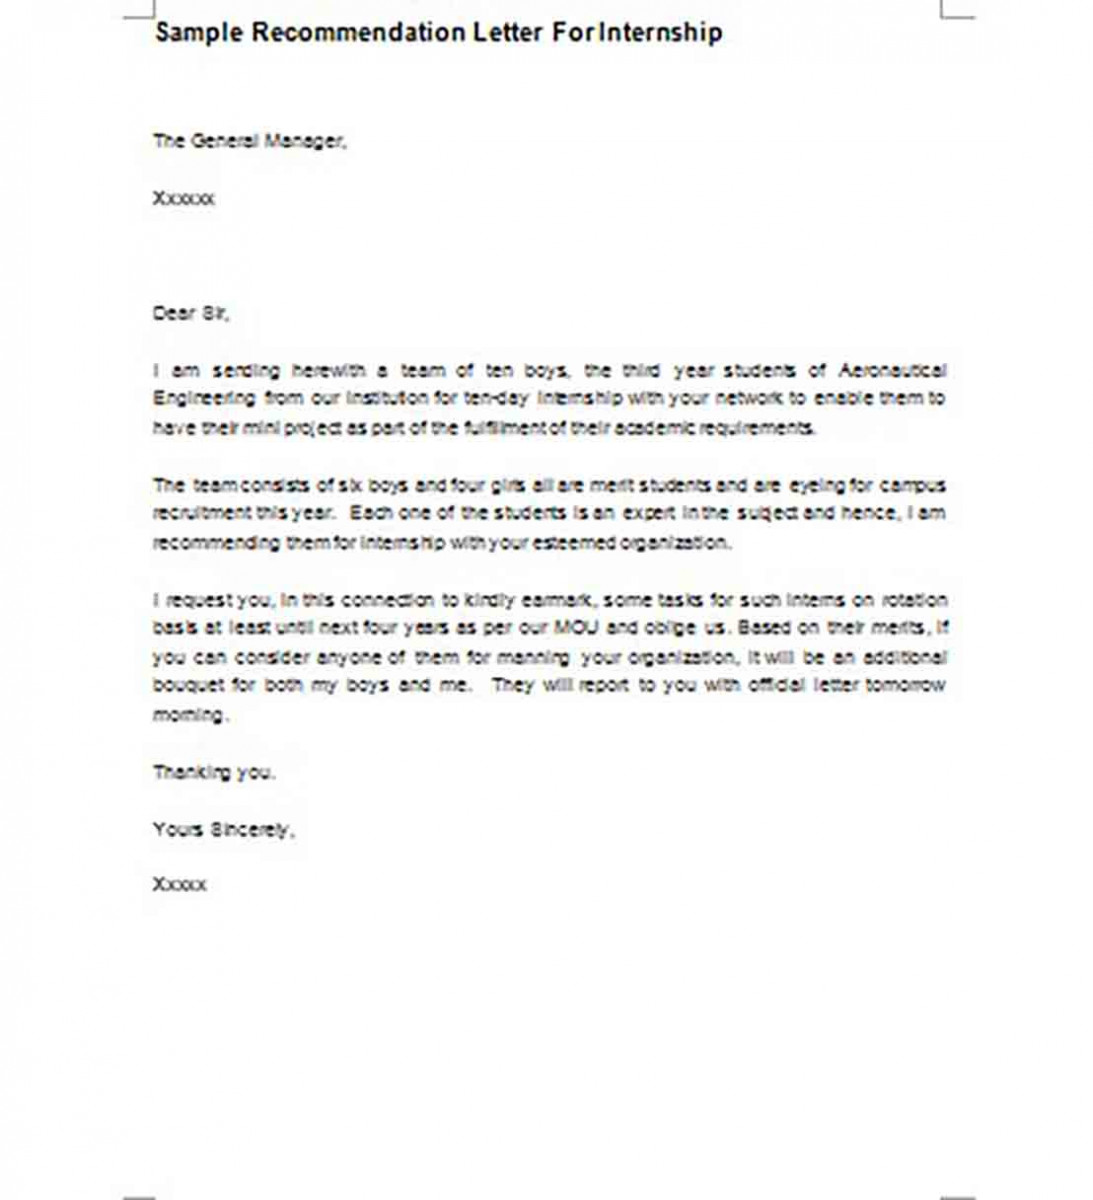 Printable Sample Recommendation Letter For Internship